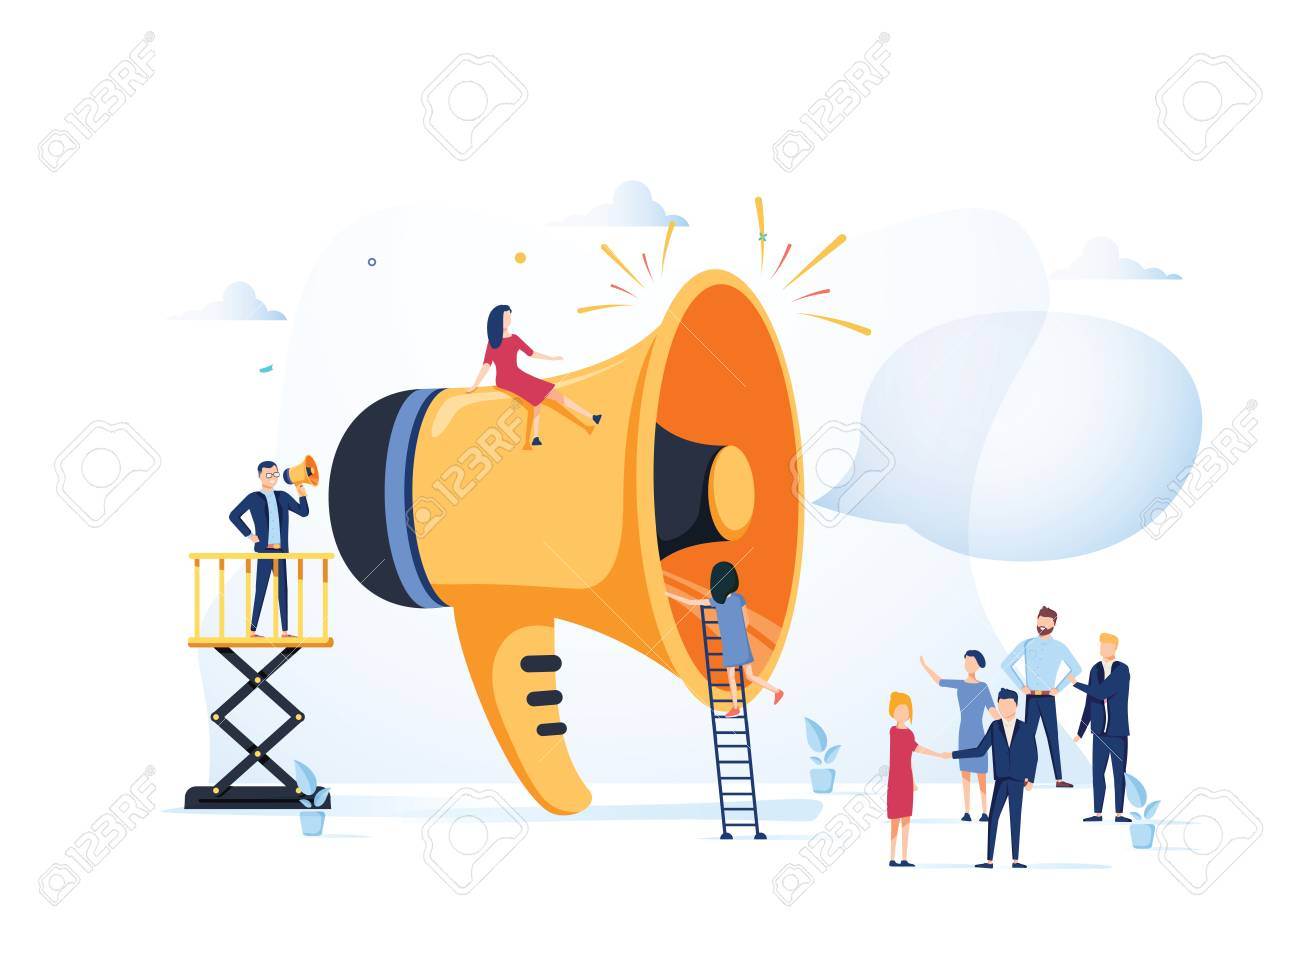 Business Advertising Promotion. Loudspeaker Talking to the Crowd. Big Megaphone and Flat People Characters Advertisement Marketing Concept. Vector illustration. Announcement business communication - 127716644